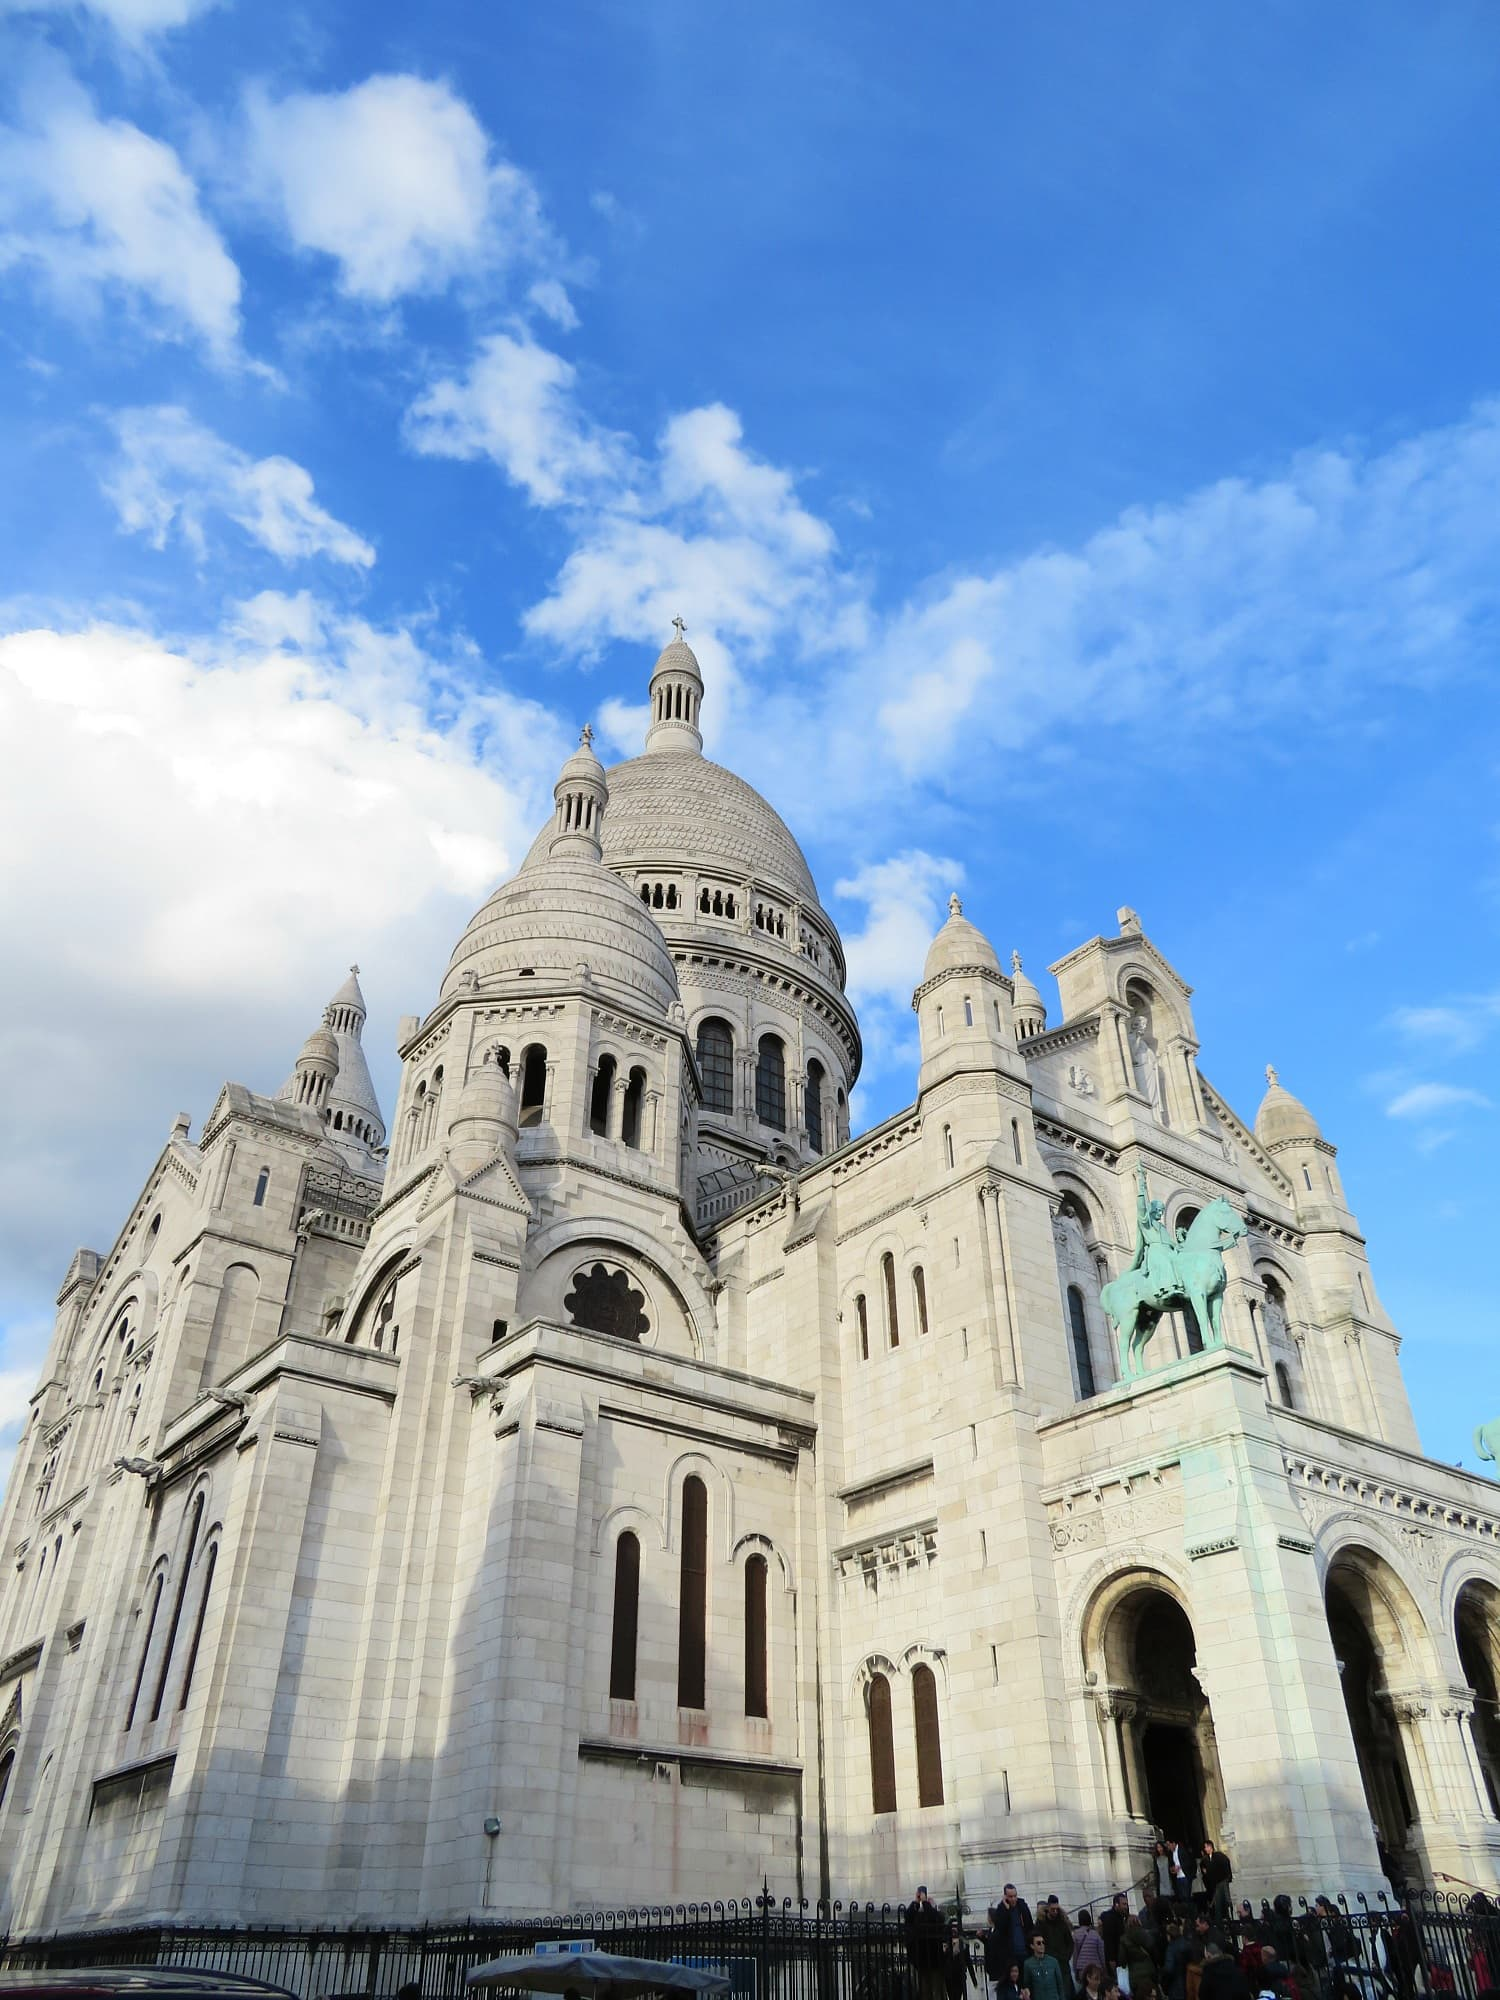 Sacre Coeur Basilica is beautiful inside and out